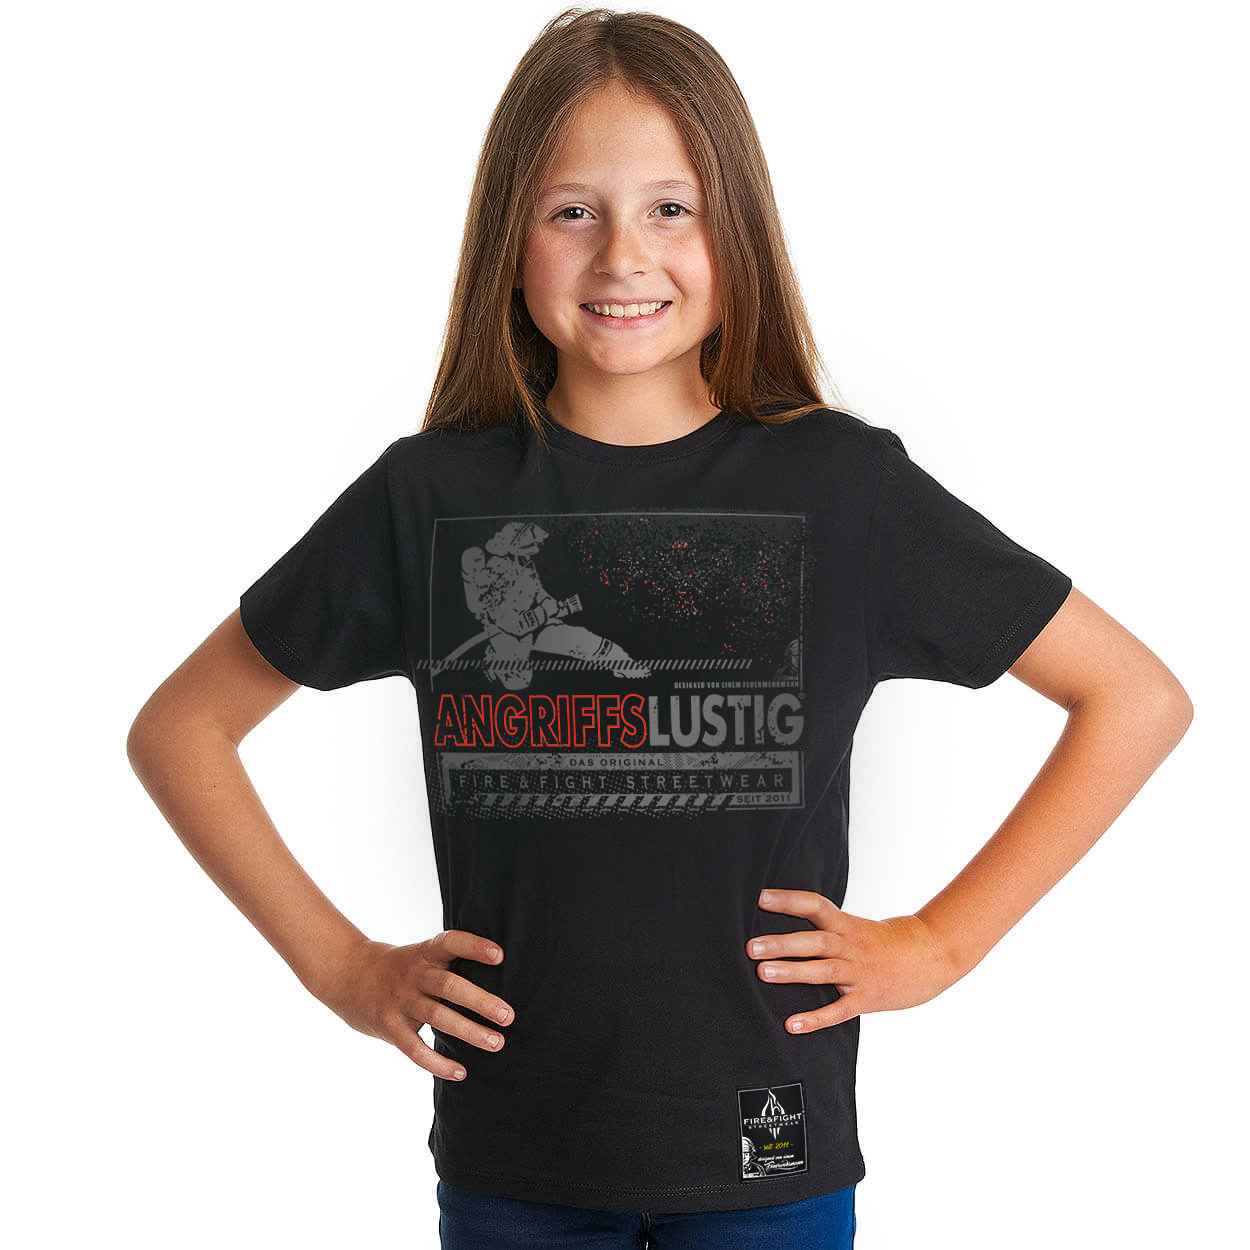 Angriffslustig® Design Kids T-Shirt